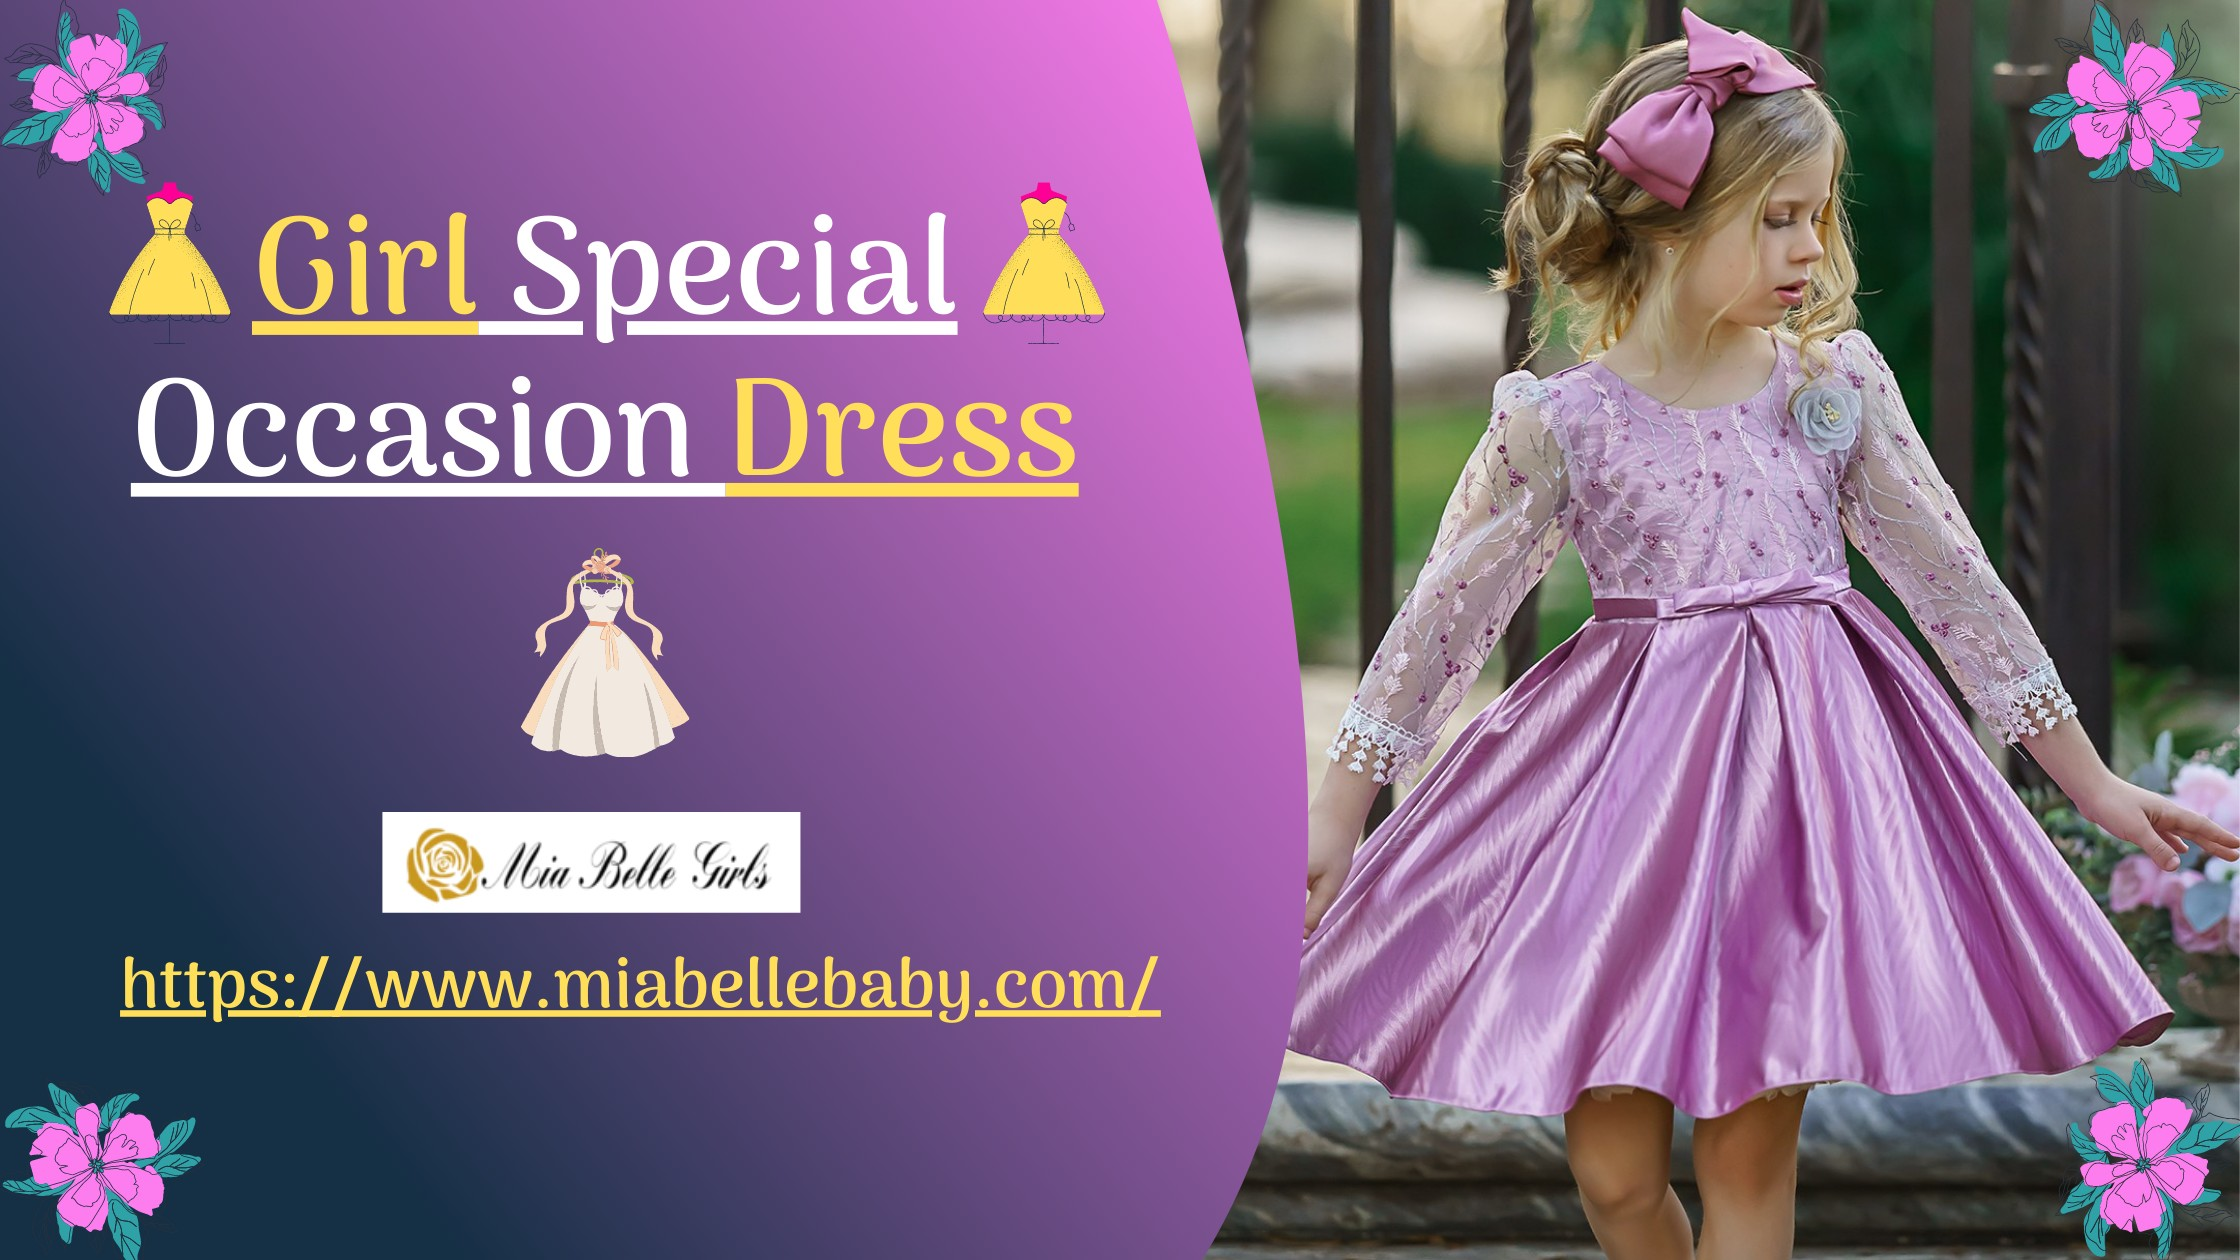 Girl Special Occasion Dress